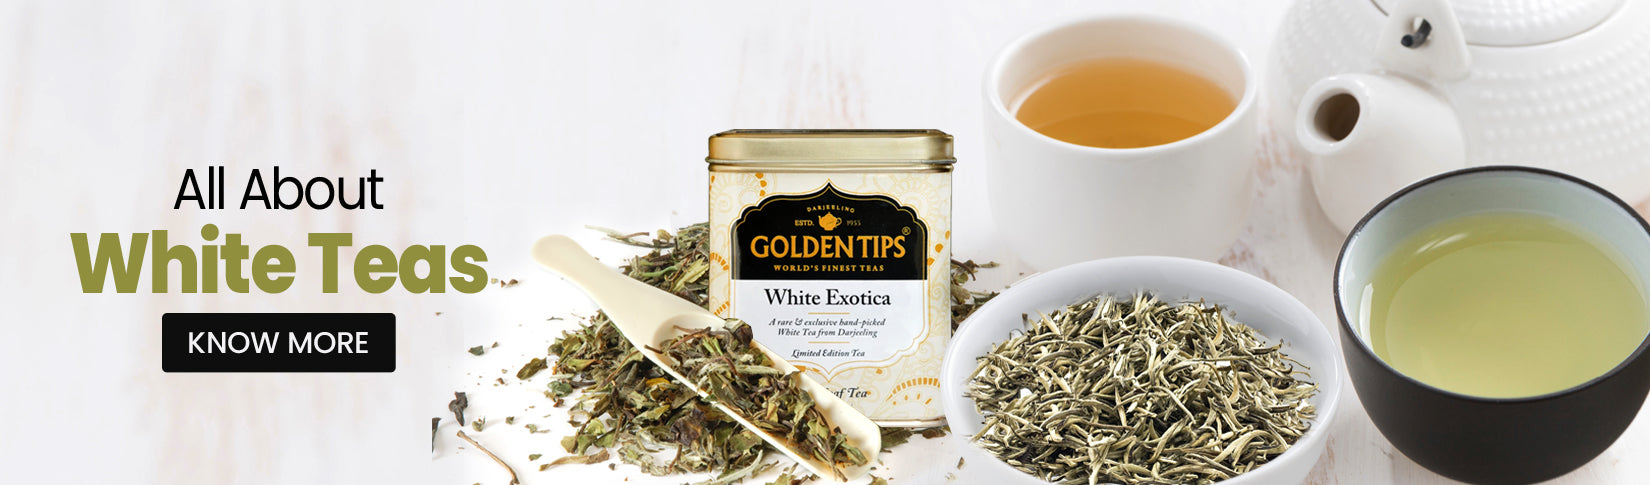 all about white teas